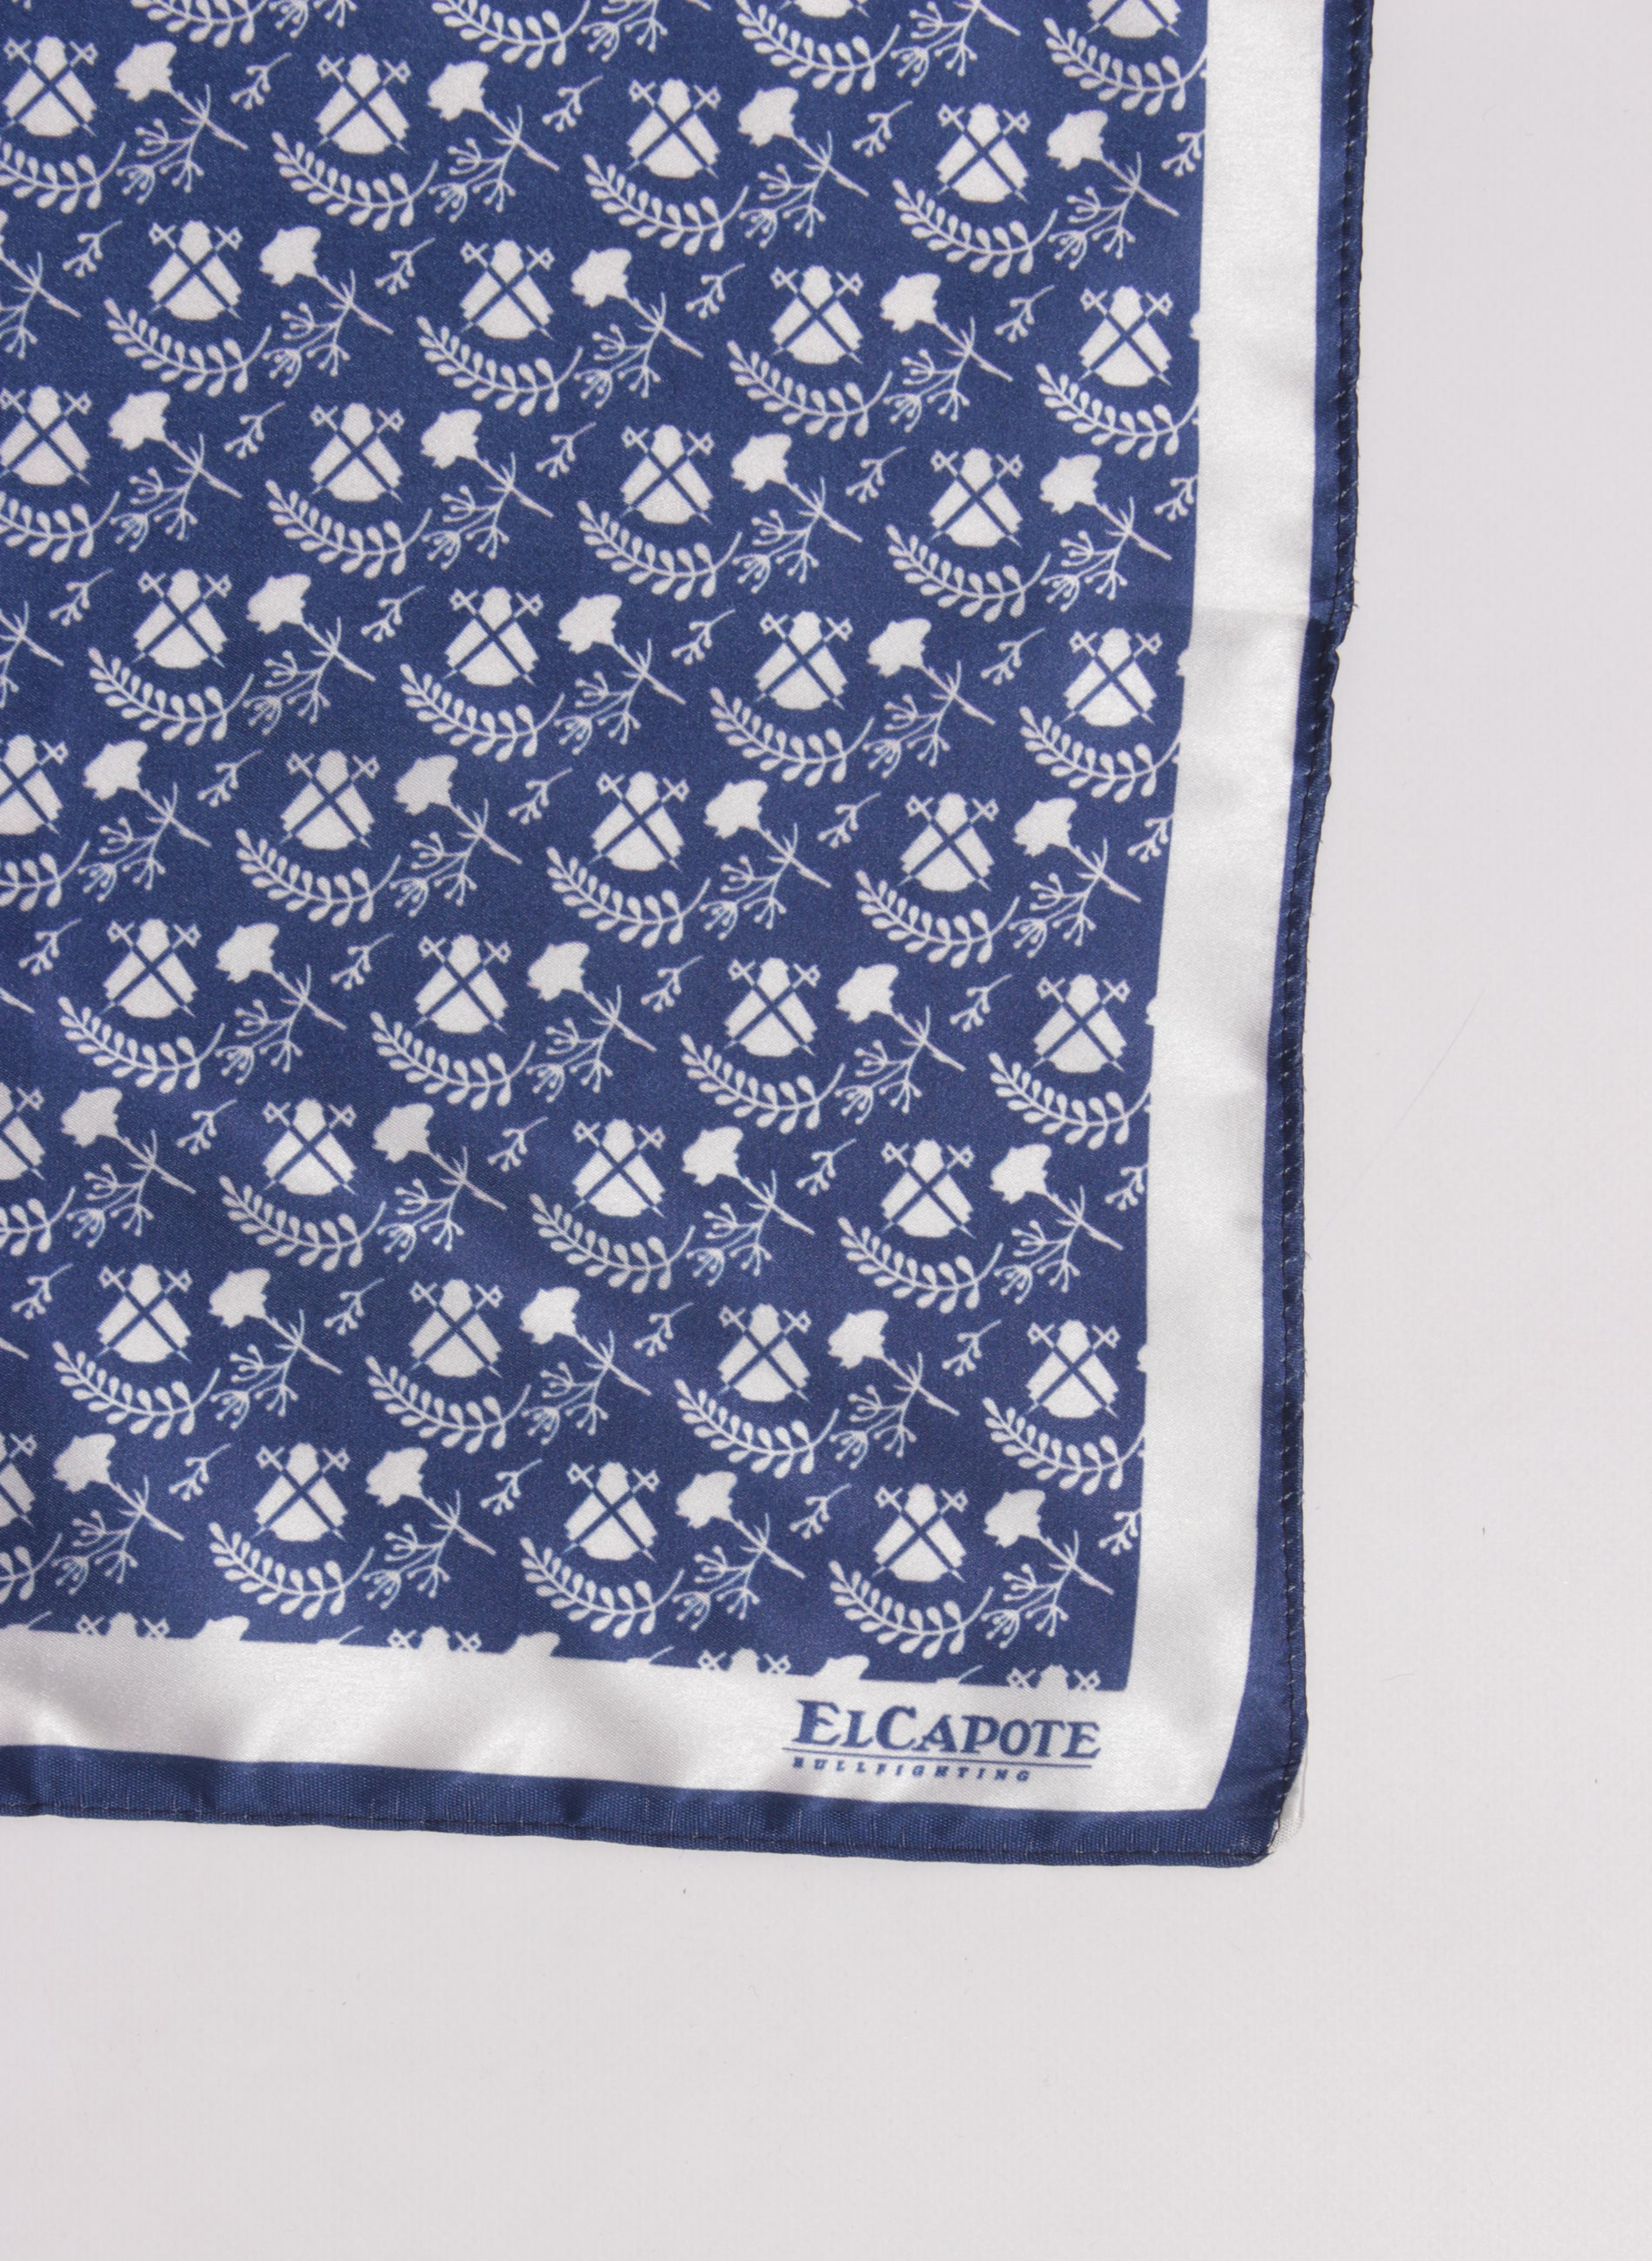 Handkerchief Pocket Navy Blue Logos Blancos